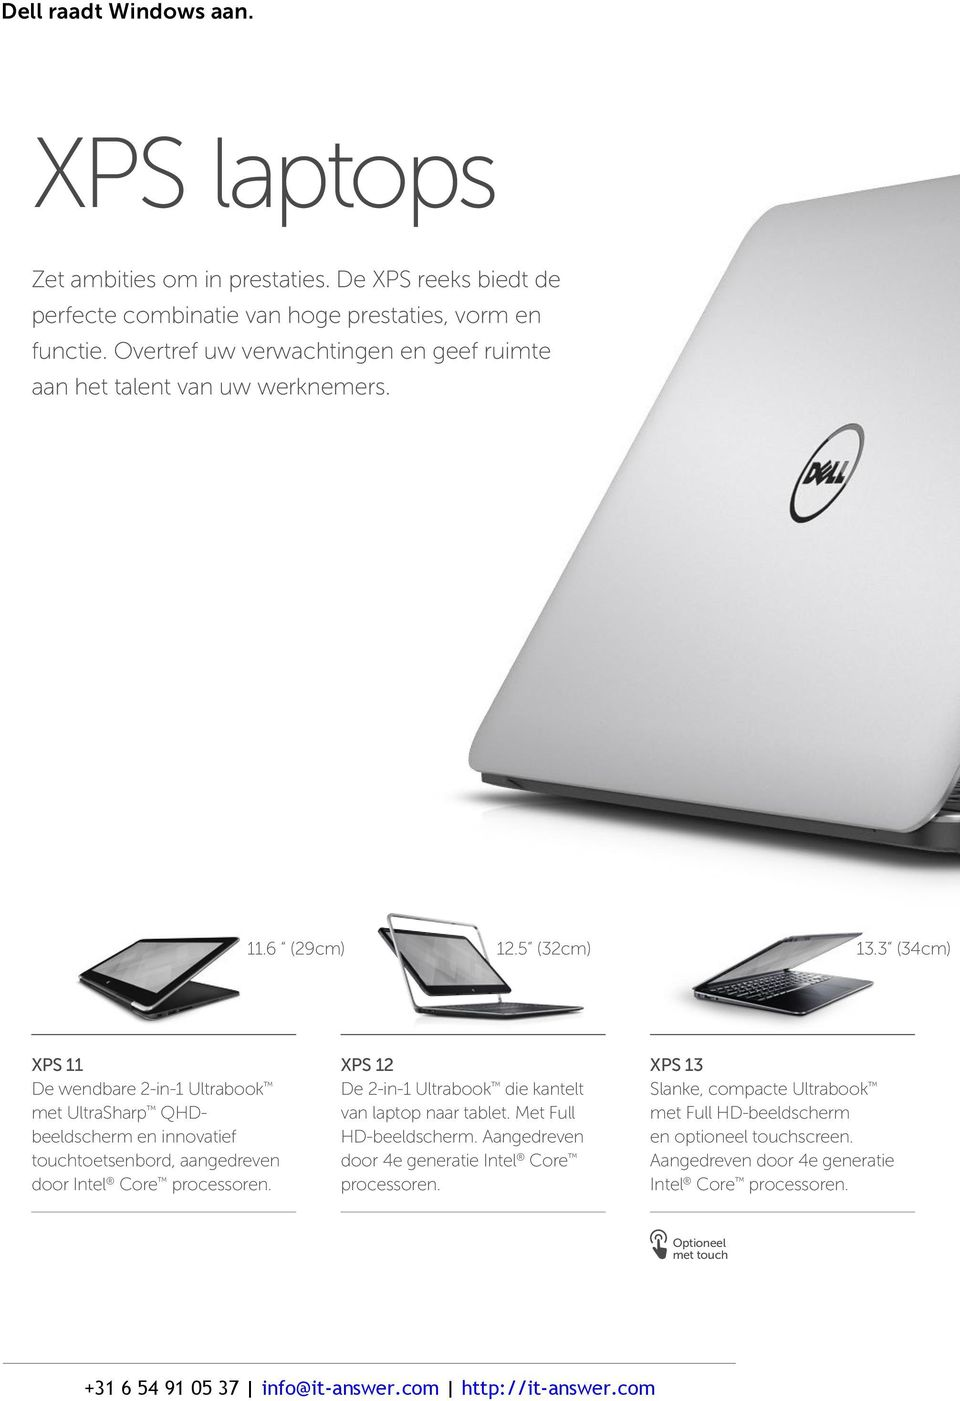 3 (34cm) XPS 11 De wendbare 2-in-1 Ultrabook met UltraSharp QHDbeeldscherm en innovatief touchtoetsenbord, aangedreven door Intel Core processoren.